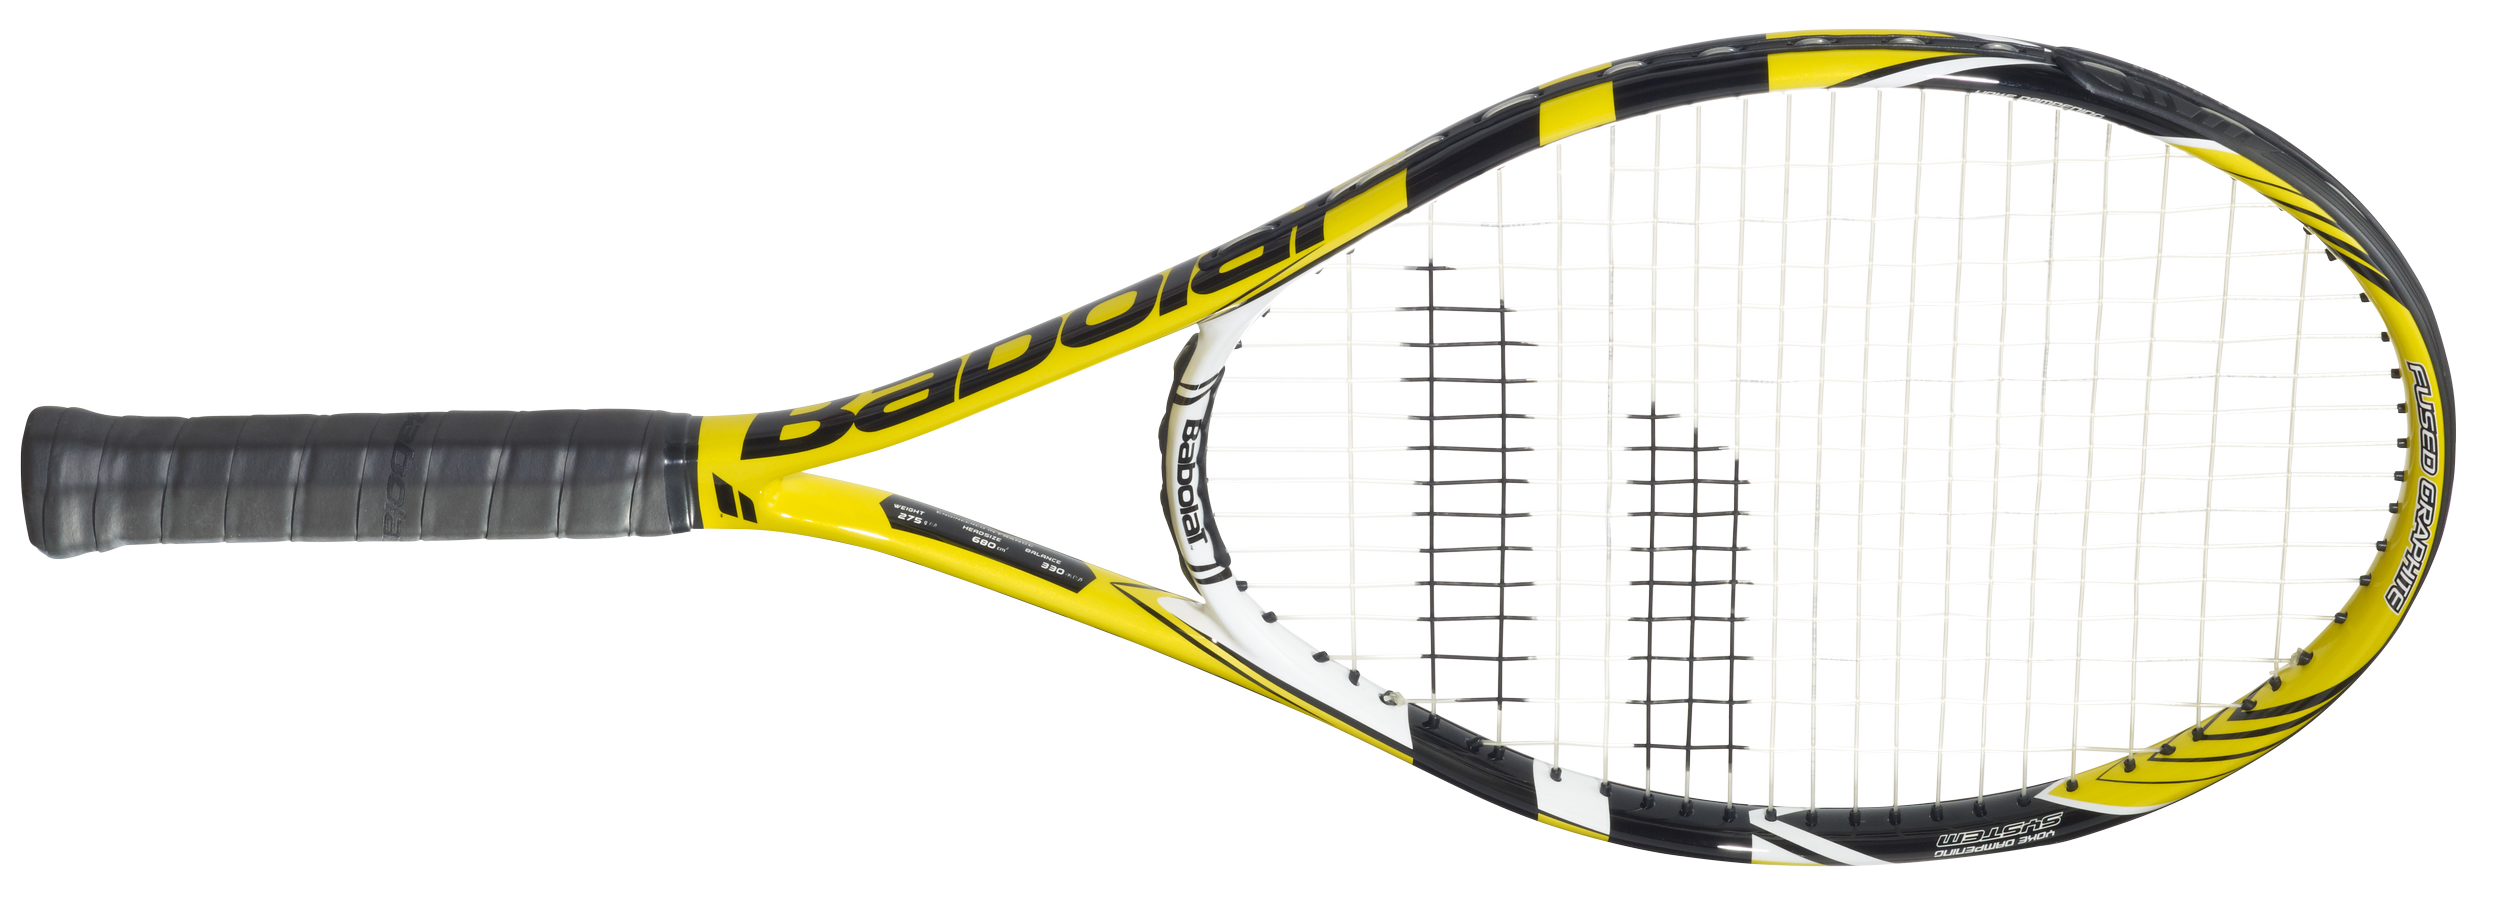 Png images free download. Racket clipart tennis team svg black and white stock